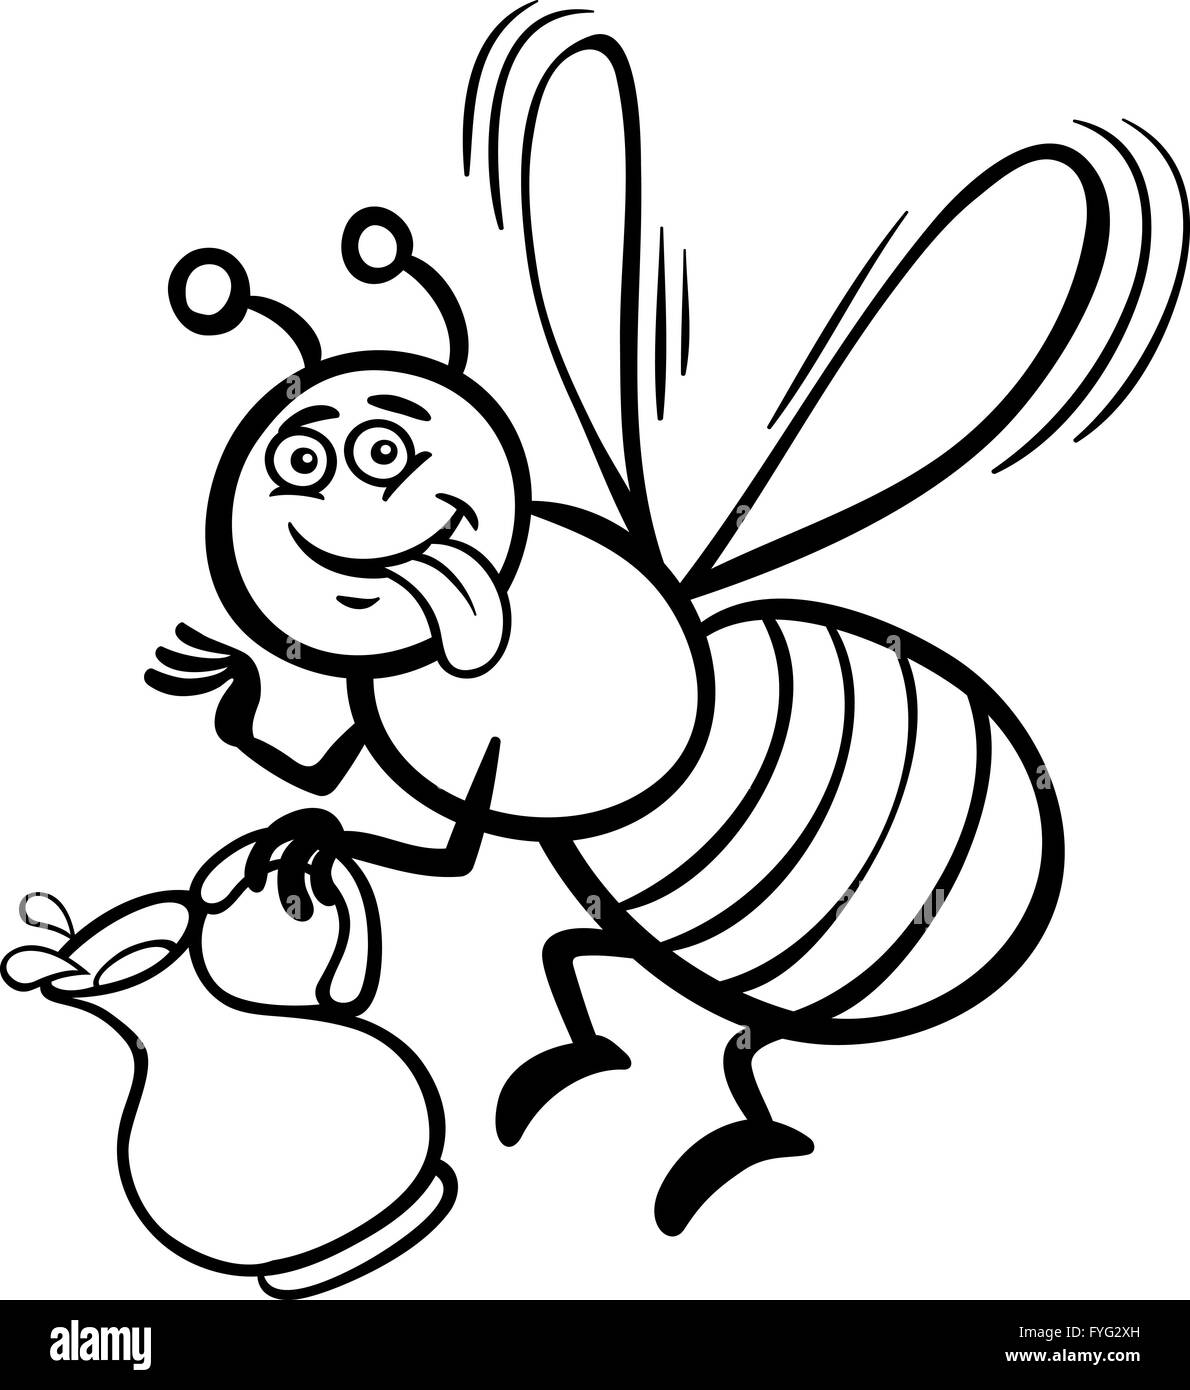 honey bee cartoon for coloring book - Stock Image